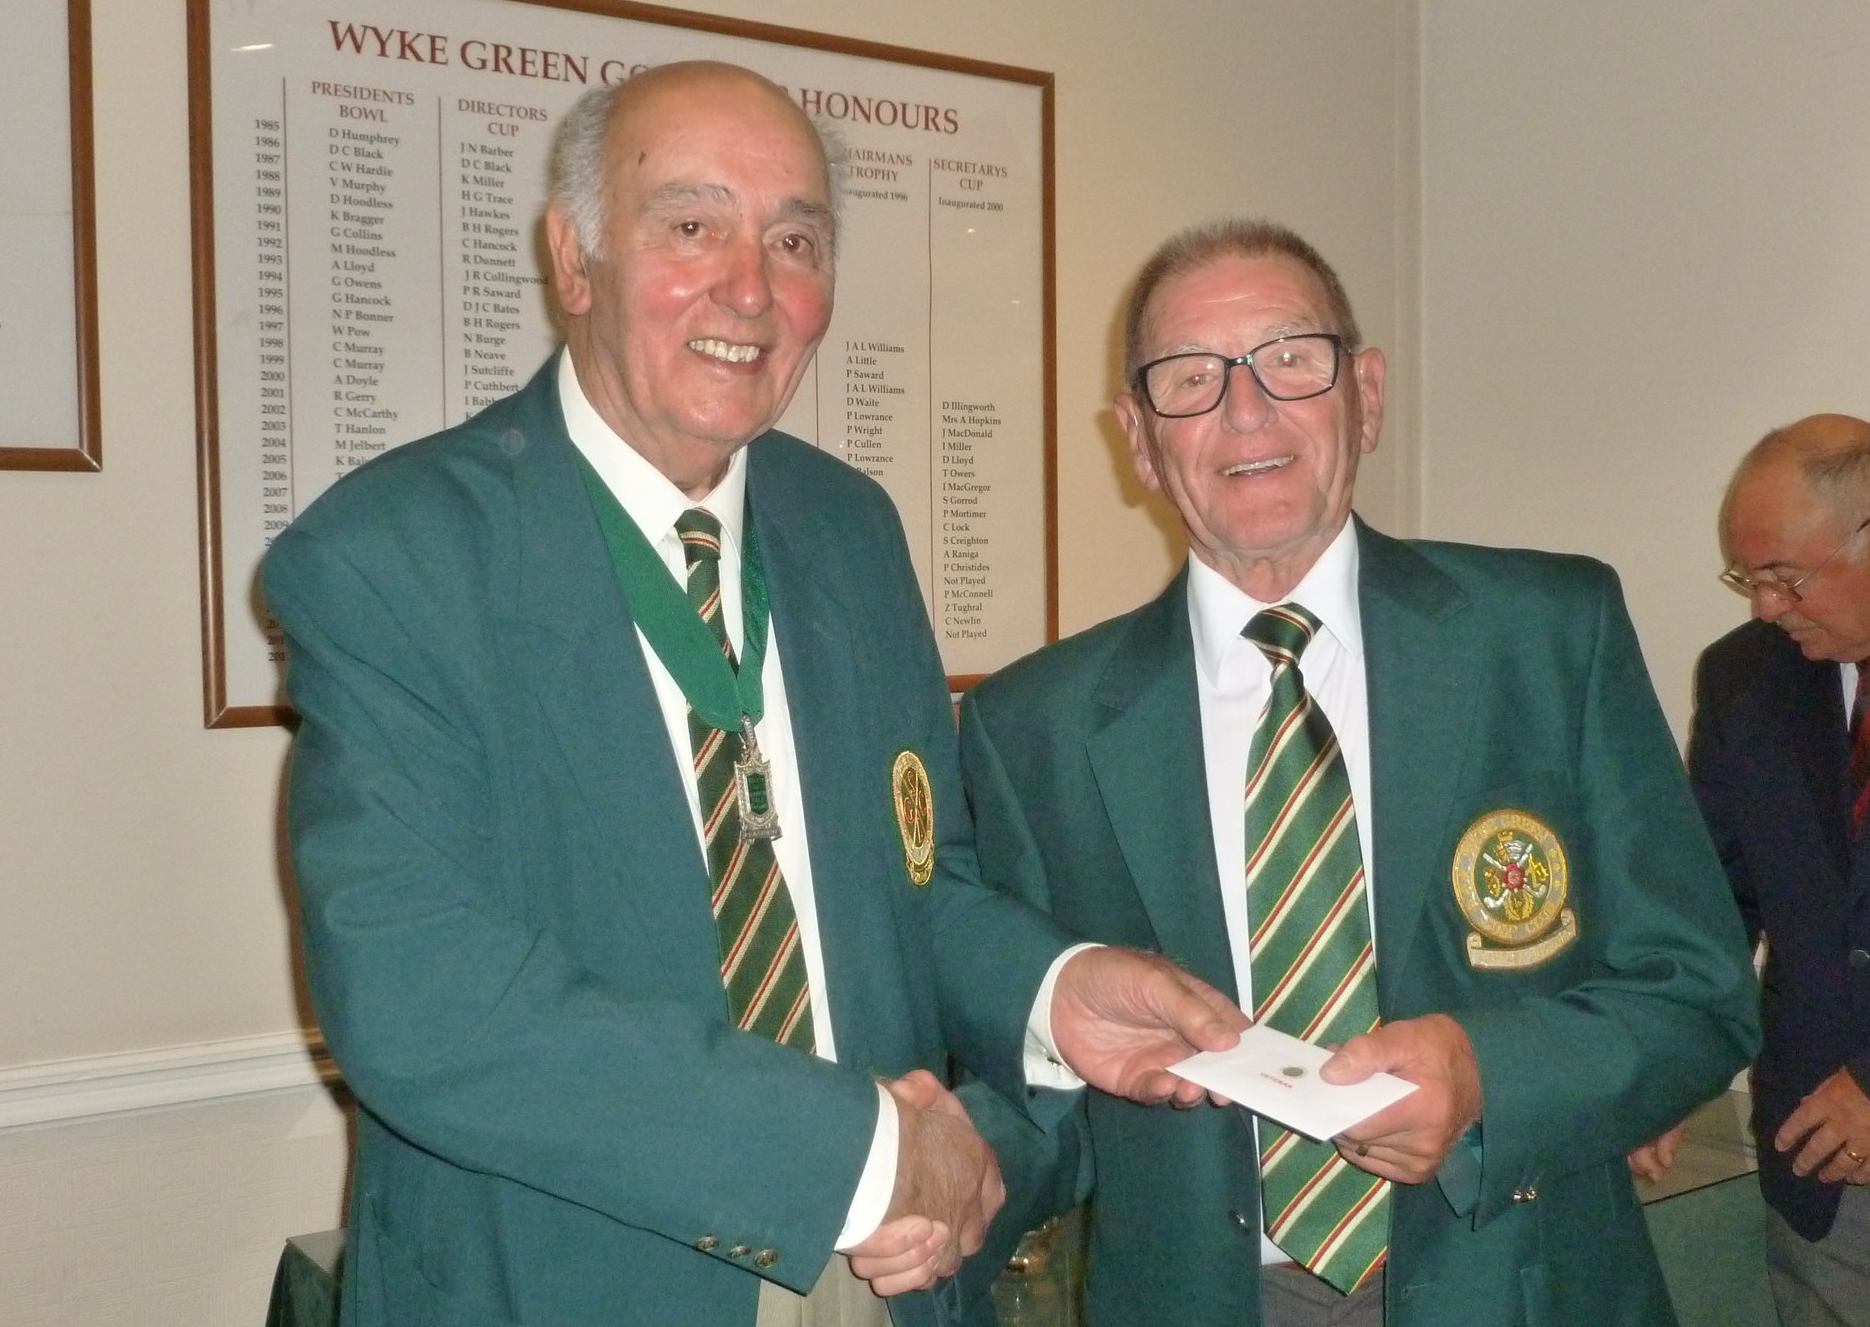 President Harry Judd presenting Andy Soutar, Wyke Green Golf Club with his prize for the best Veteran player.